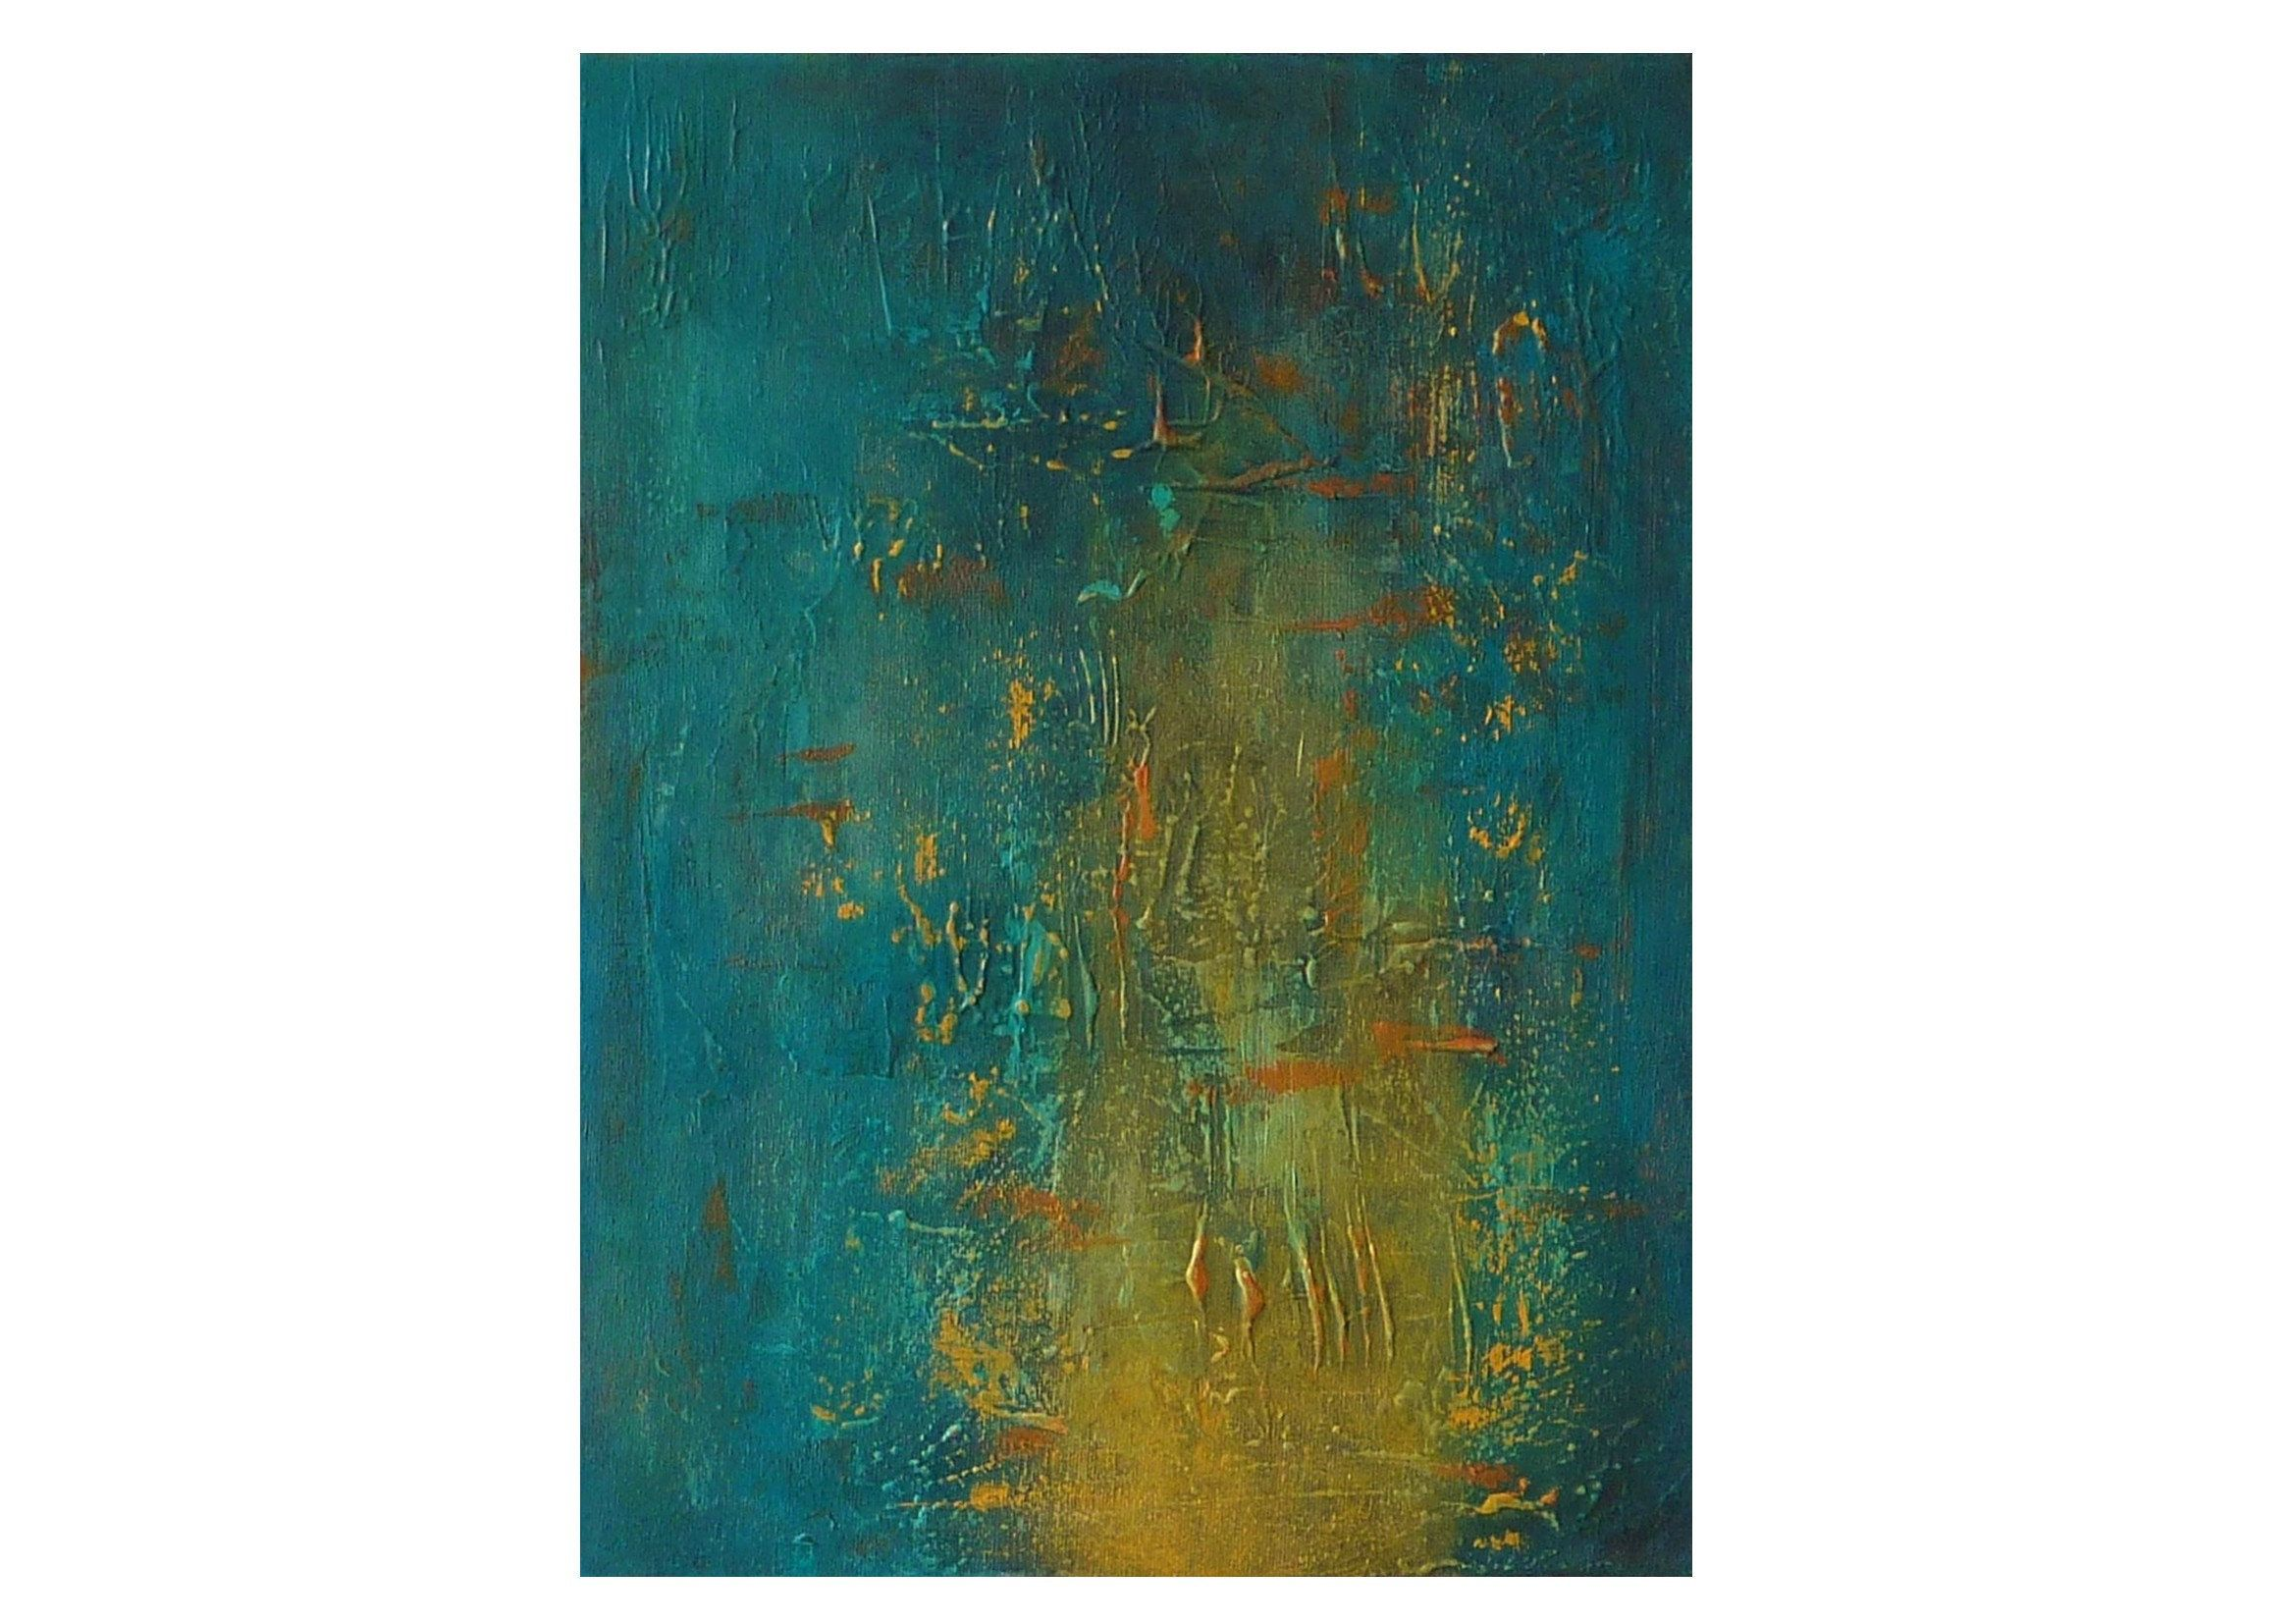 Original teal blue yellow abstract painting texture canvas artwork